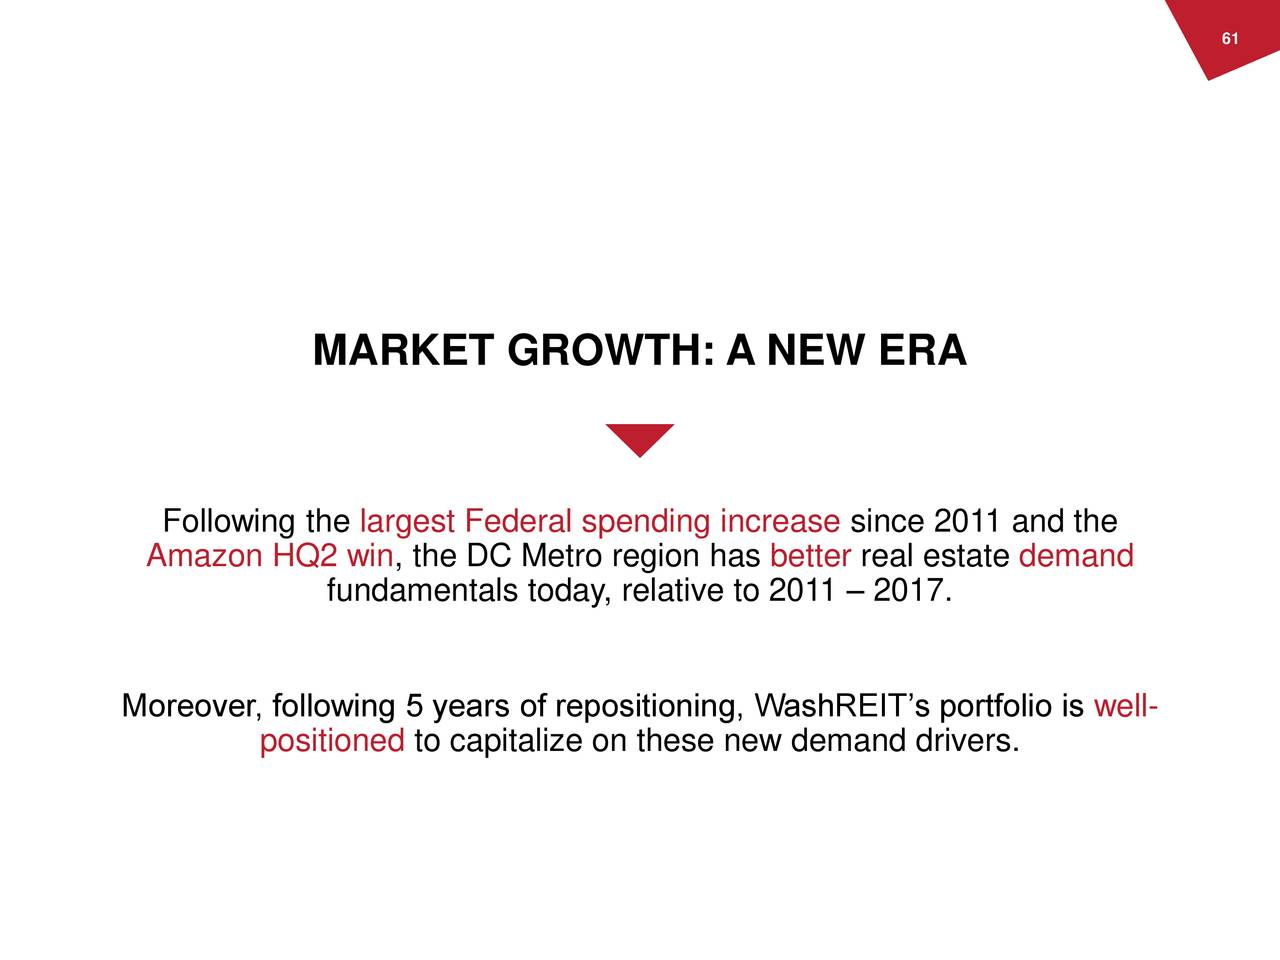 MARKET GROWTH: A NEW ERA Following the largest Federal spending increase since 2011 and the Amazon HQ2 win, the DC Metro region has better real estate demand fundamentals today, relative to 2011 – 2017. Moreover, following 5 years of repositioning, WashREIT's portfolio is well- positioned to capitalize on these new demand drivers.